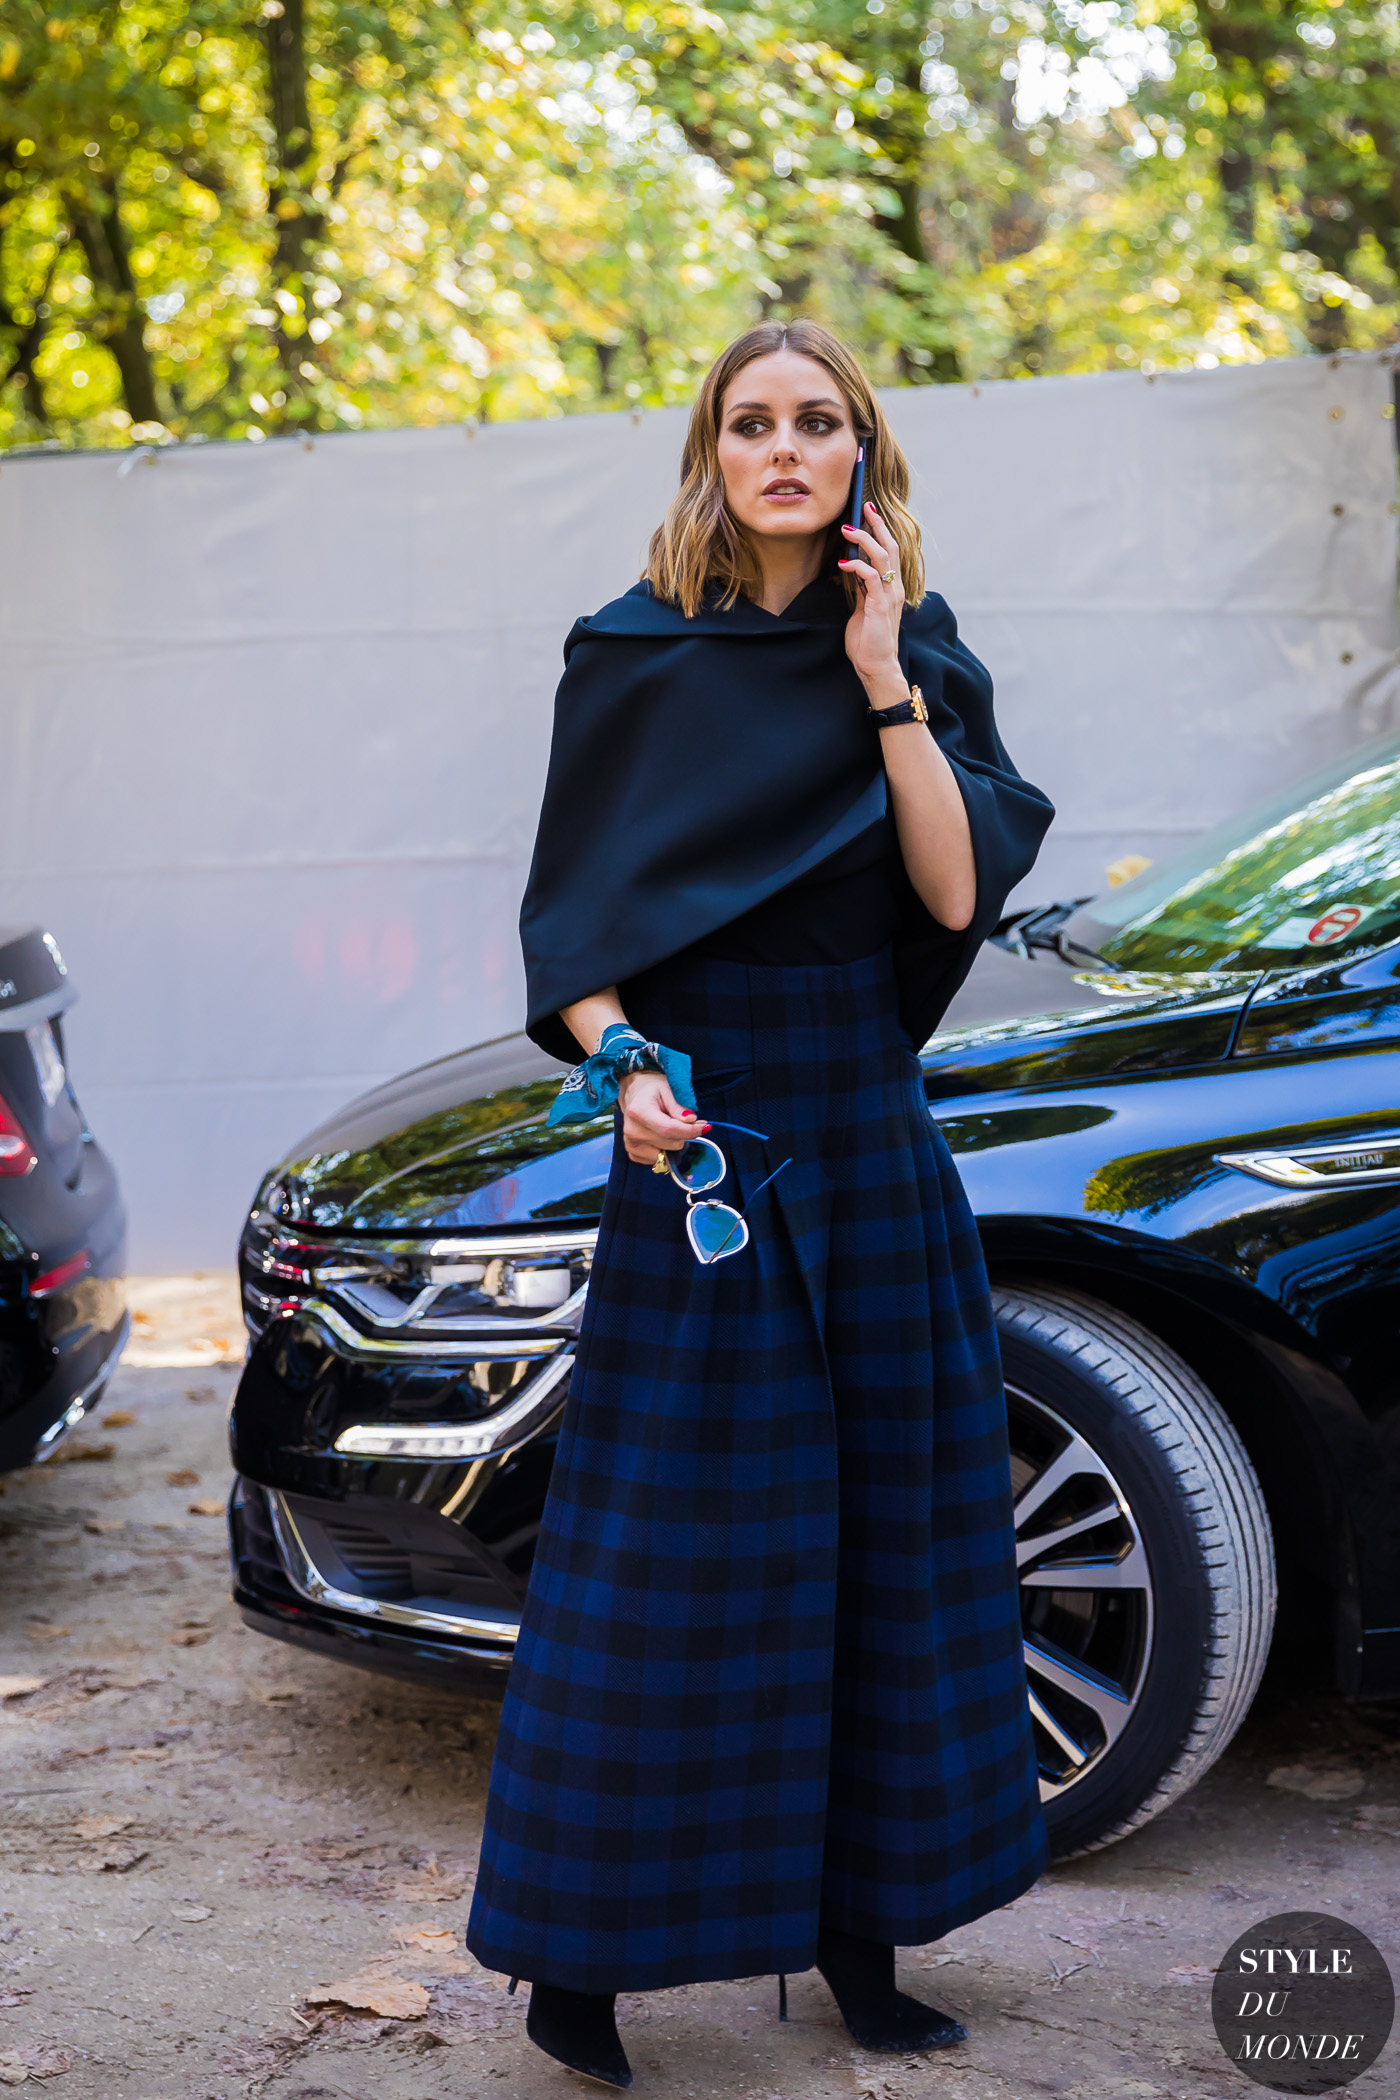 Olivia-Palermo-by-STYLEDUMONDE-Street-Style-Fashion-Photography_48A4165